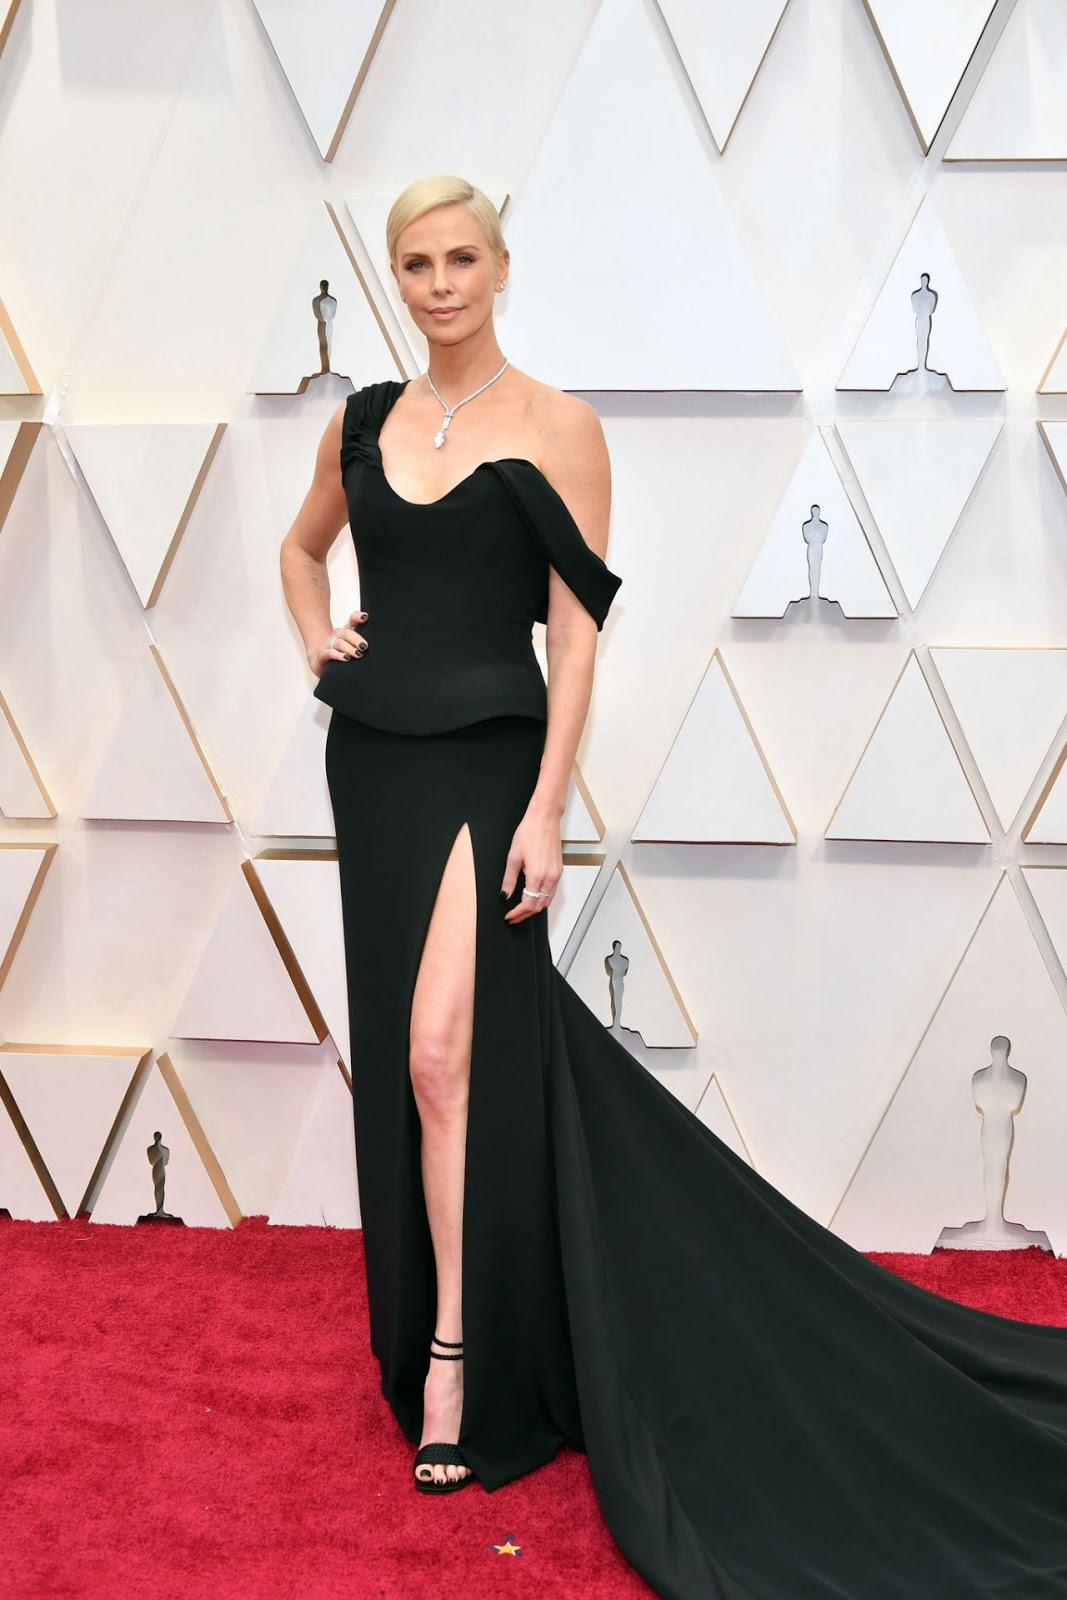 Charlize Theron brings classic glamour to the 2020 Oscars in a Dior Couture ensemble